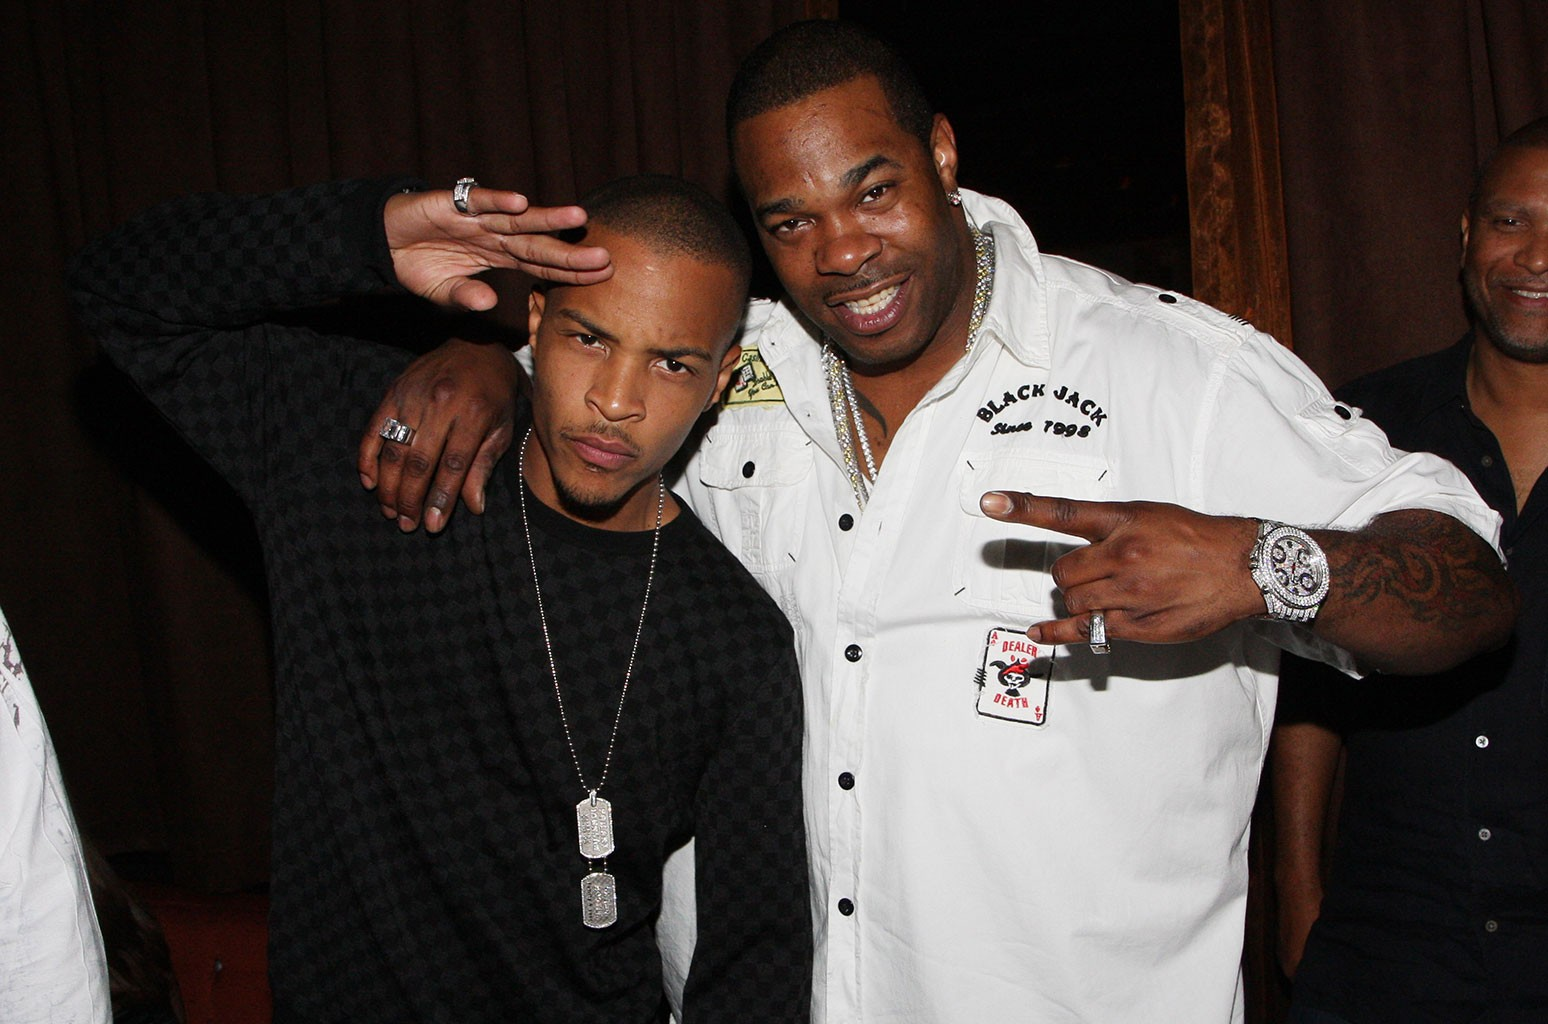 T.I. and Busta Rhymes